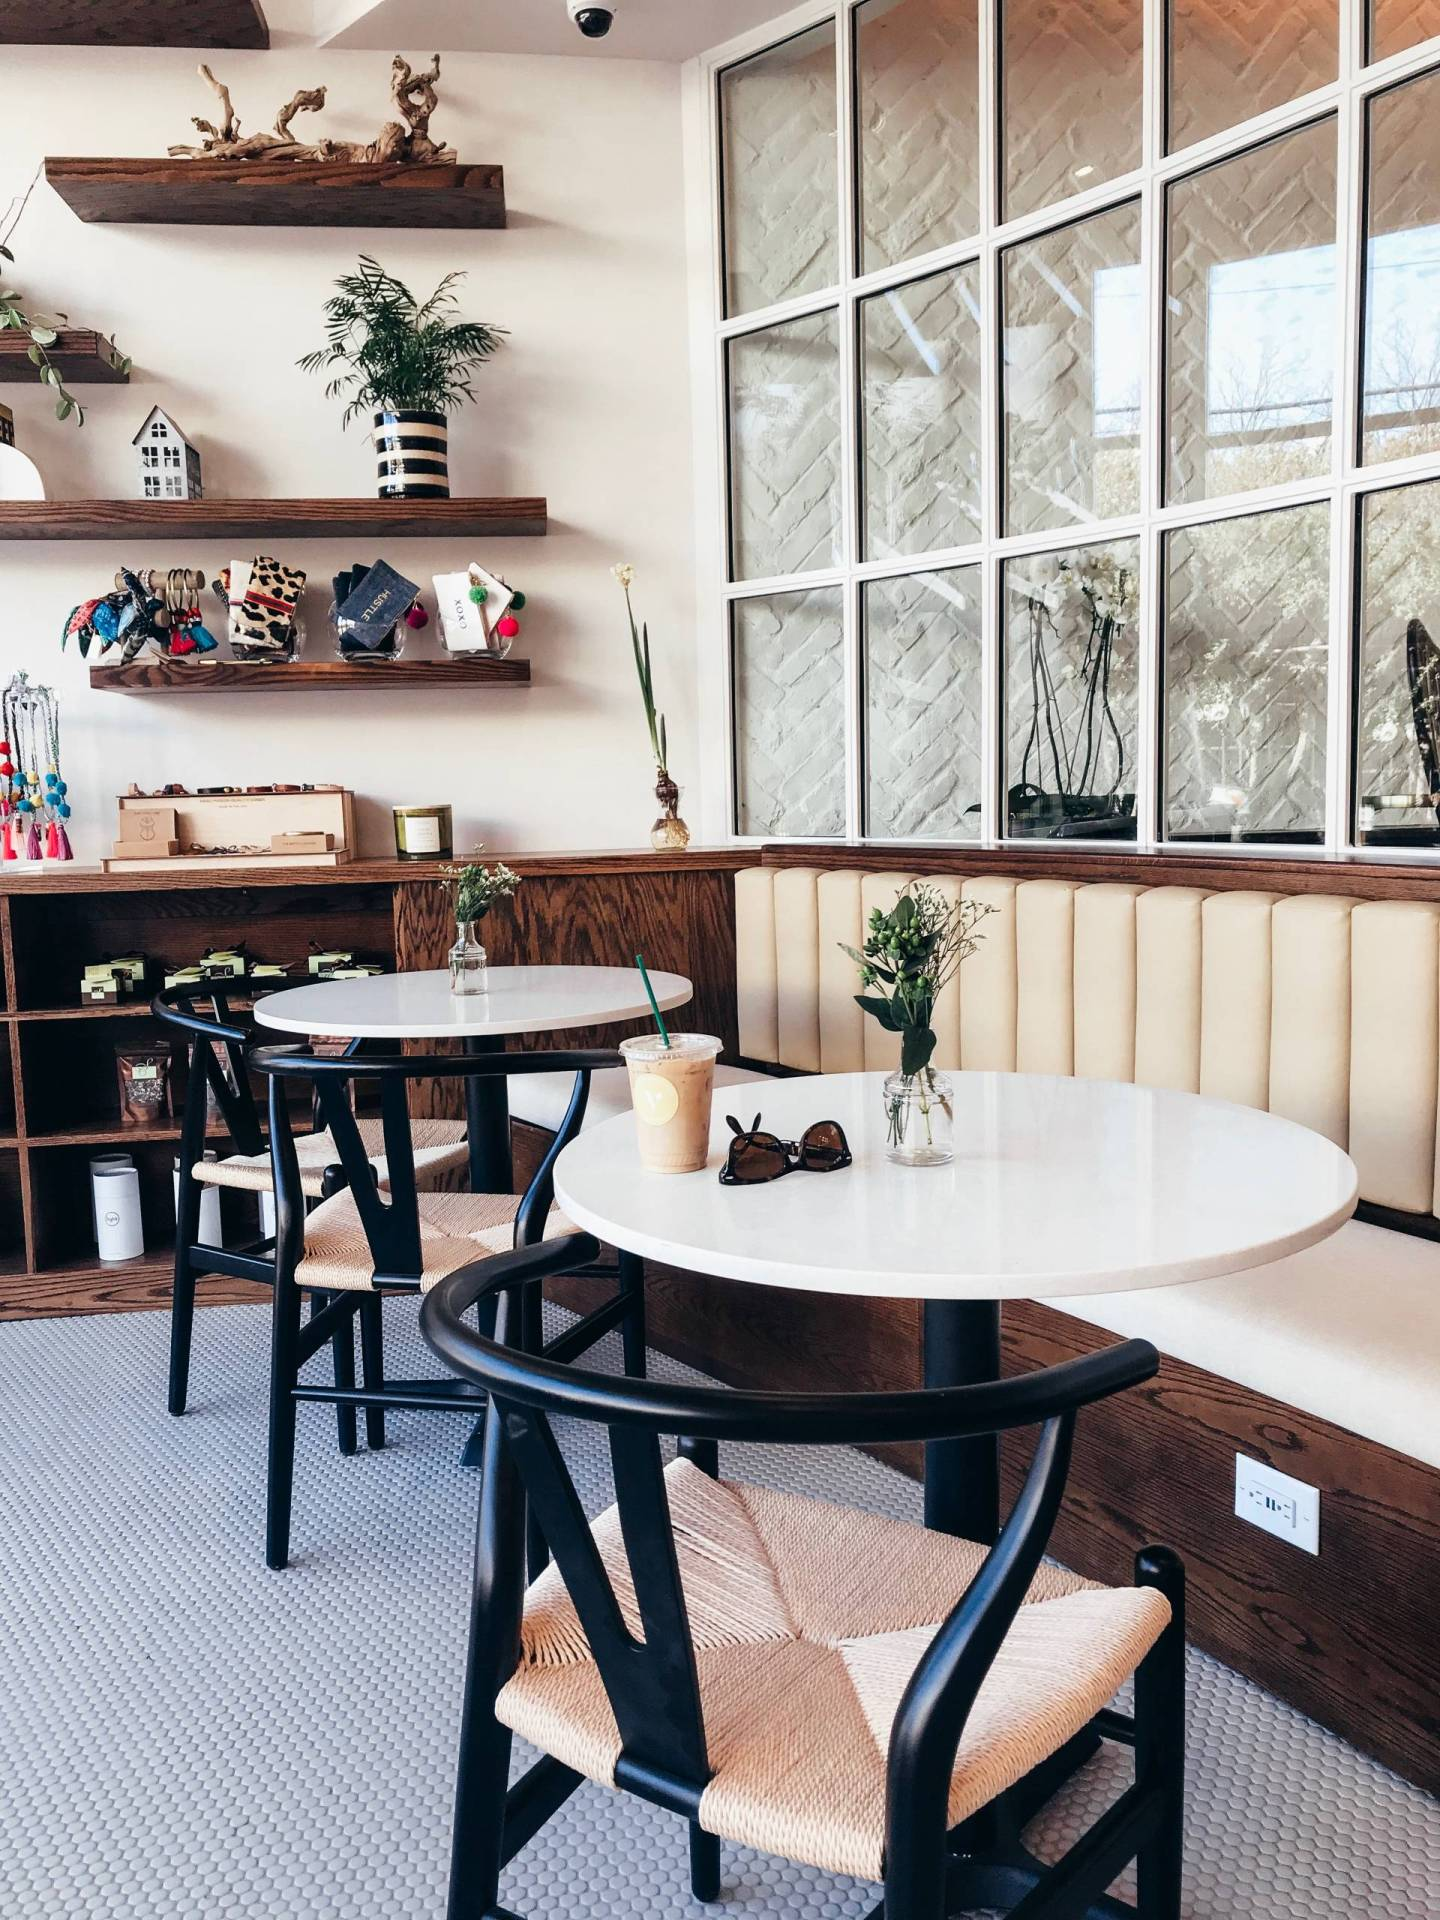 The 10 Best Coffee Shops in Dallas